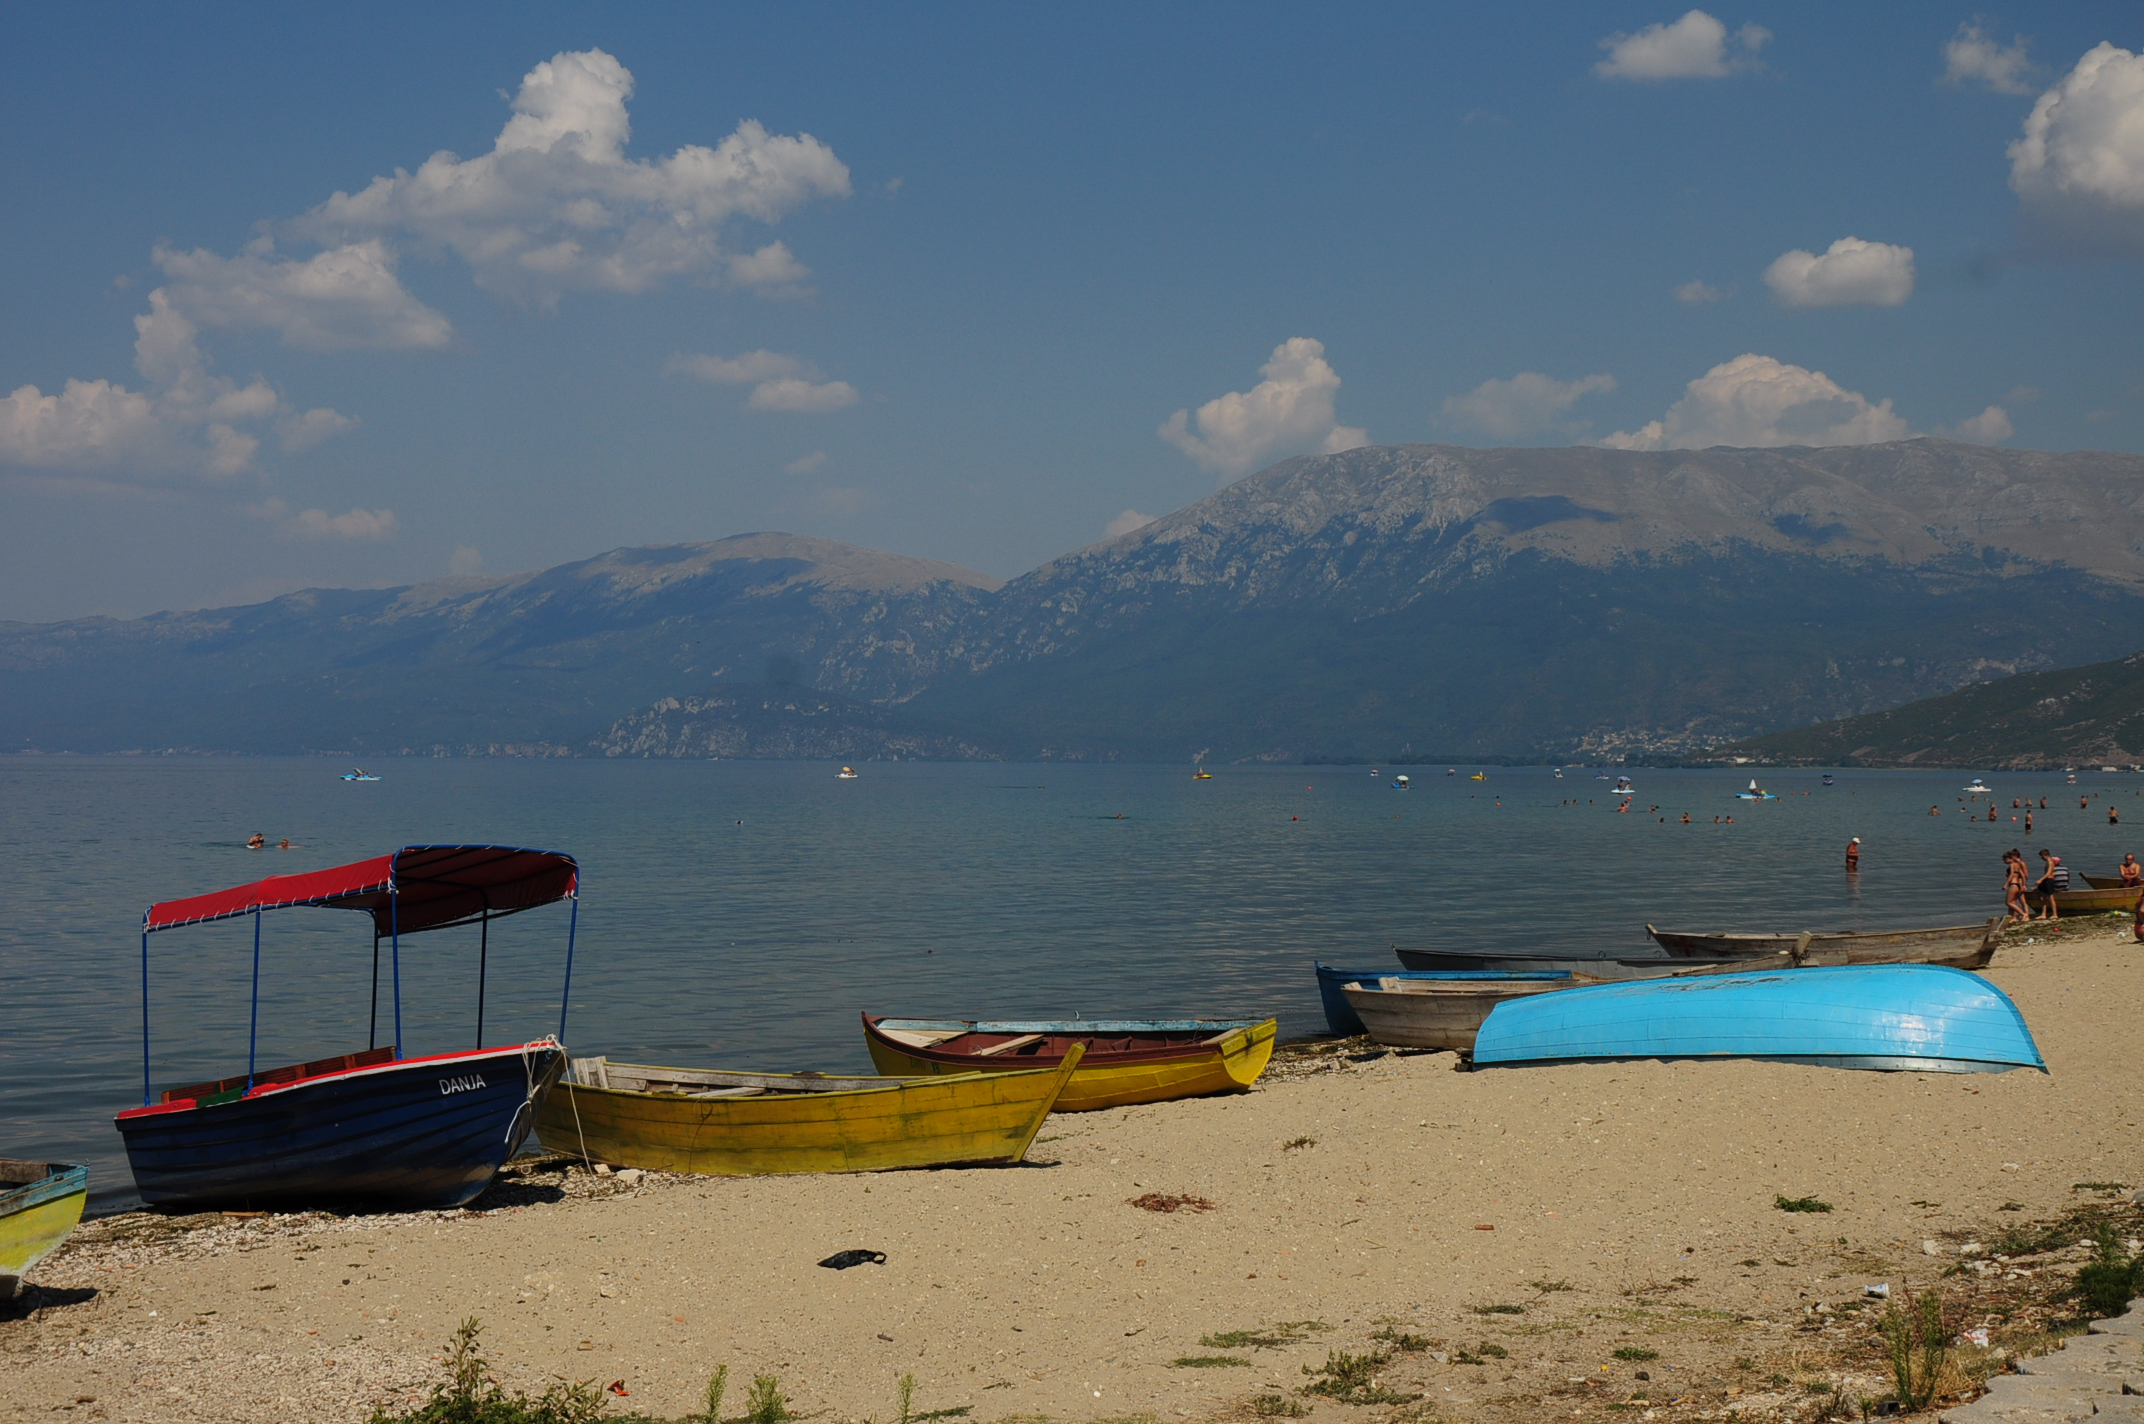 The public beach in Pogradec